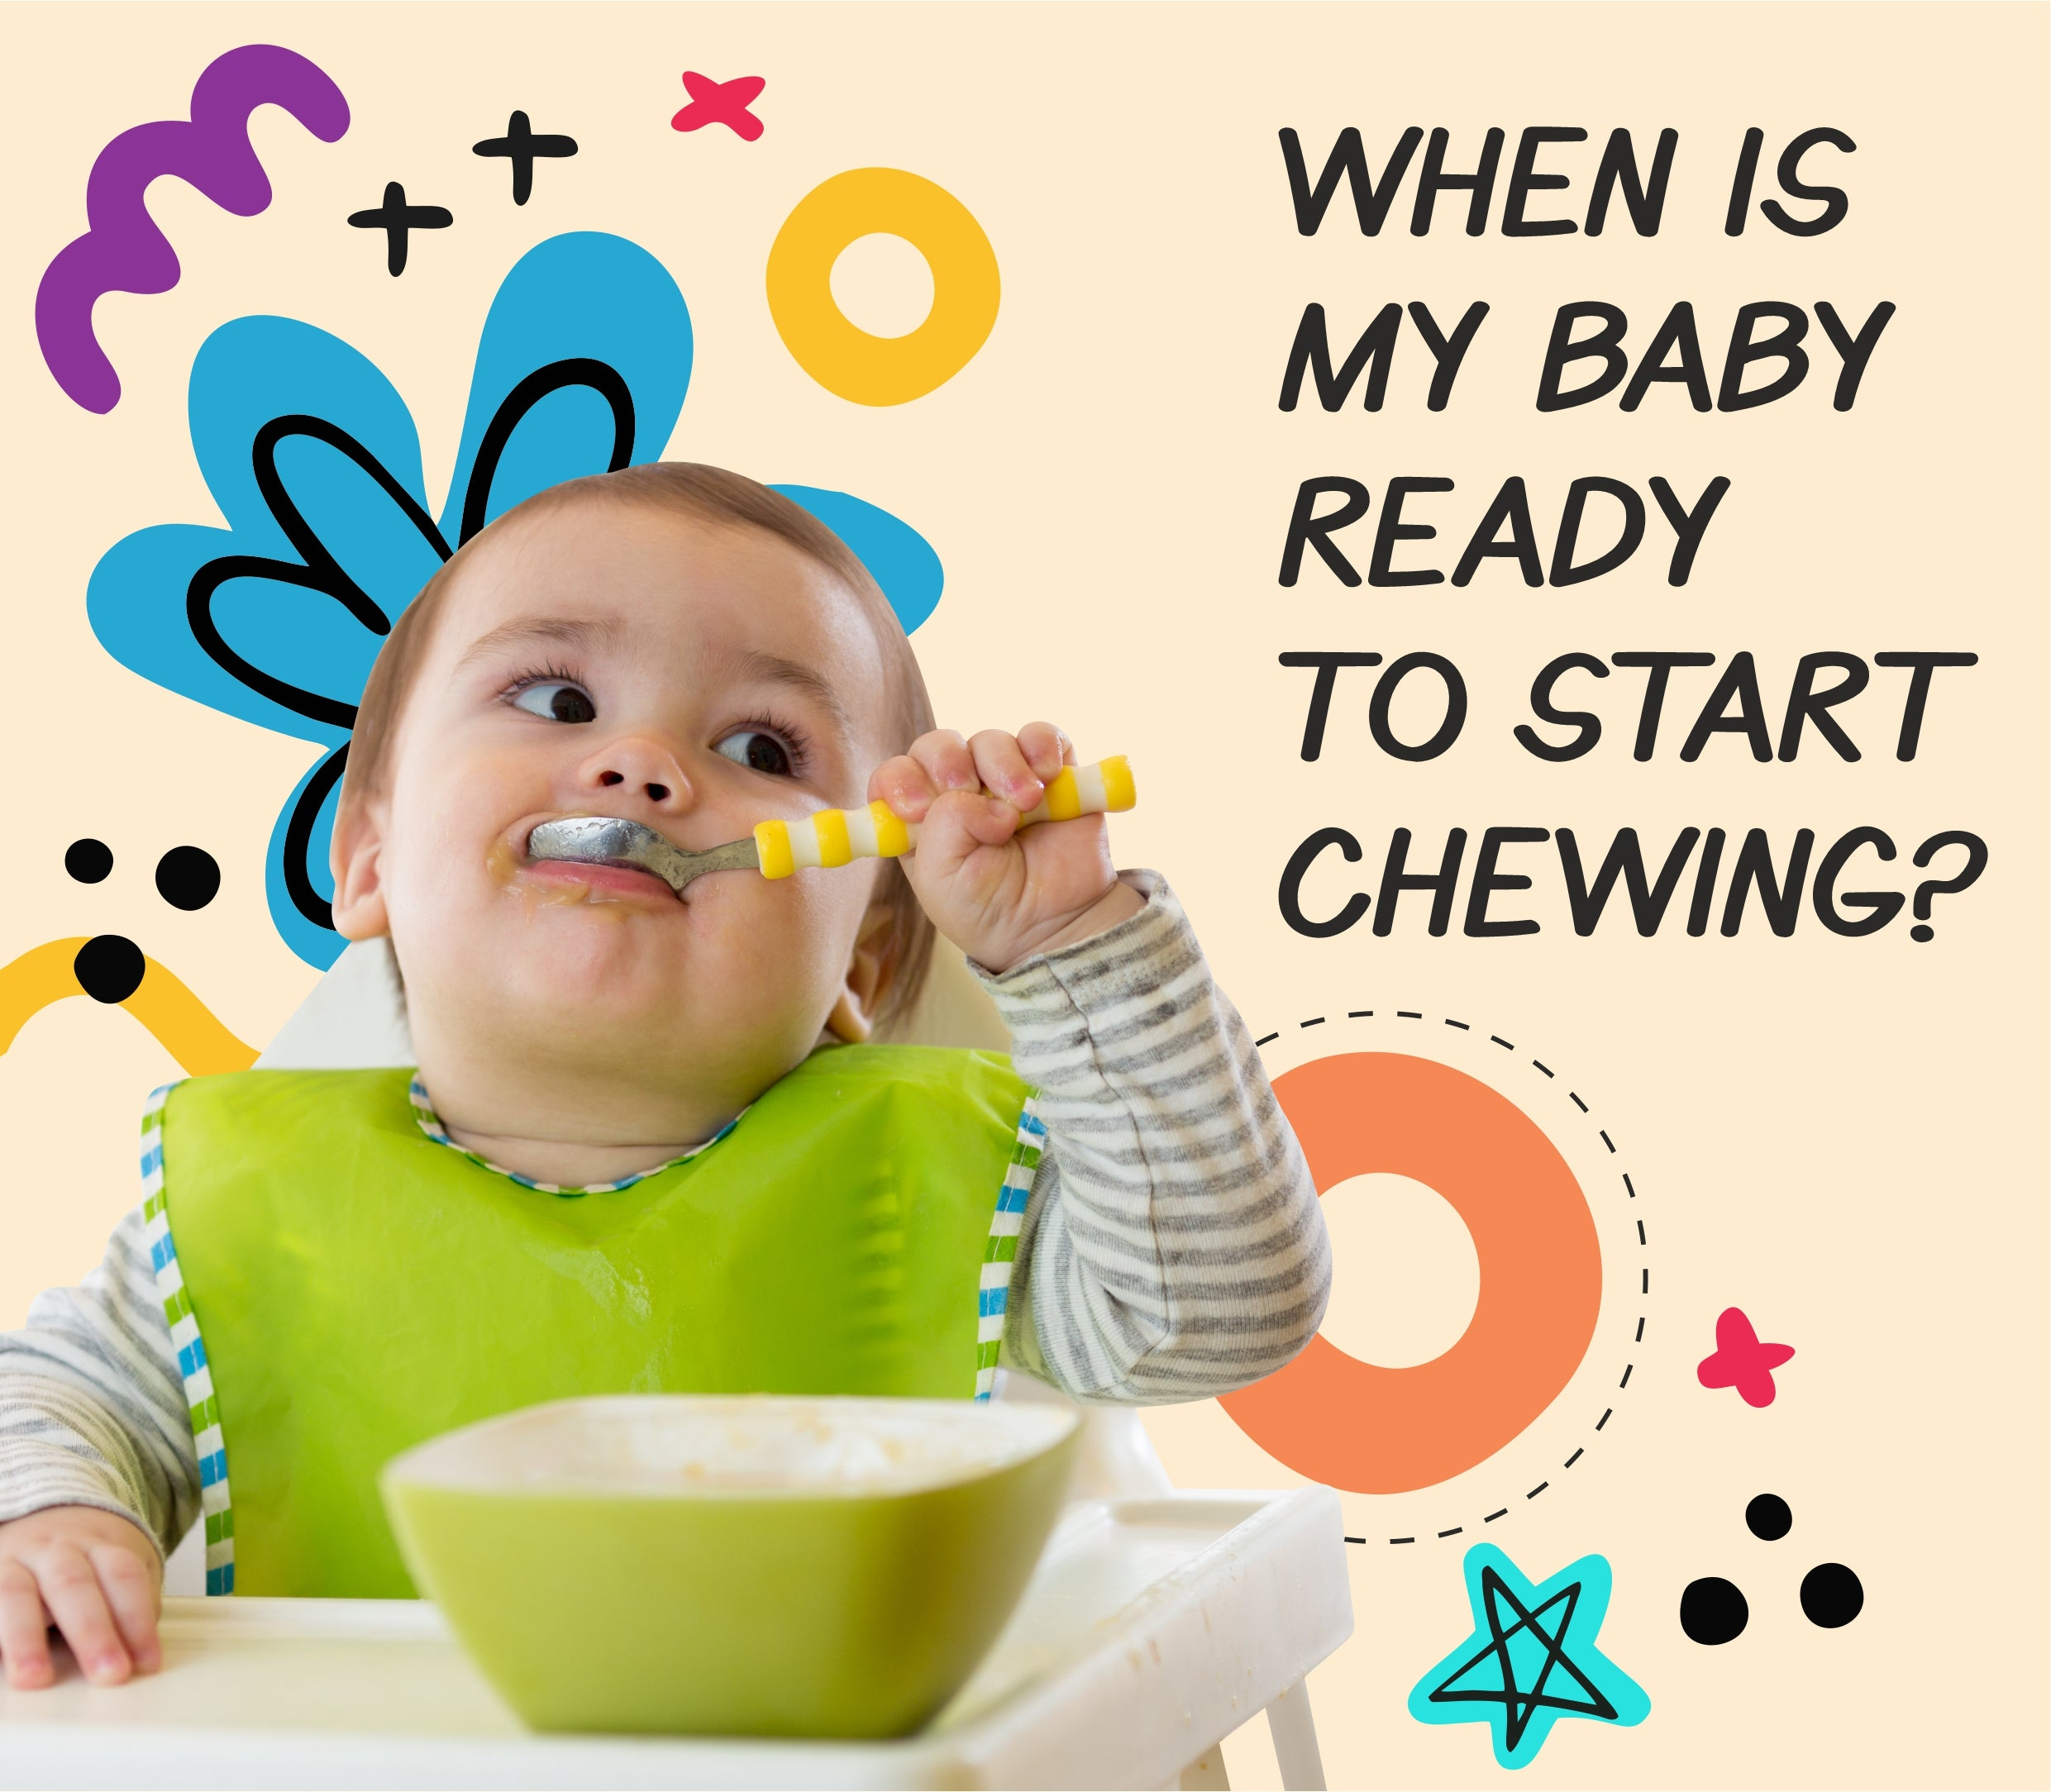 When is my baby ready to start chewing?